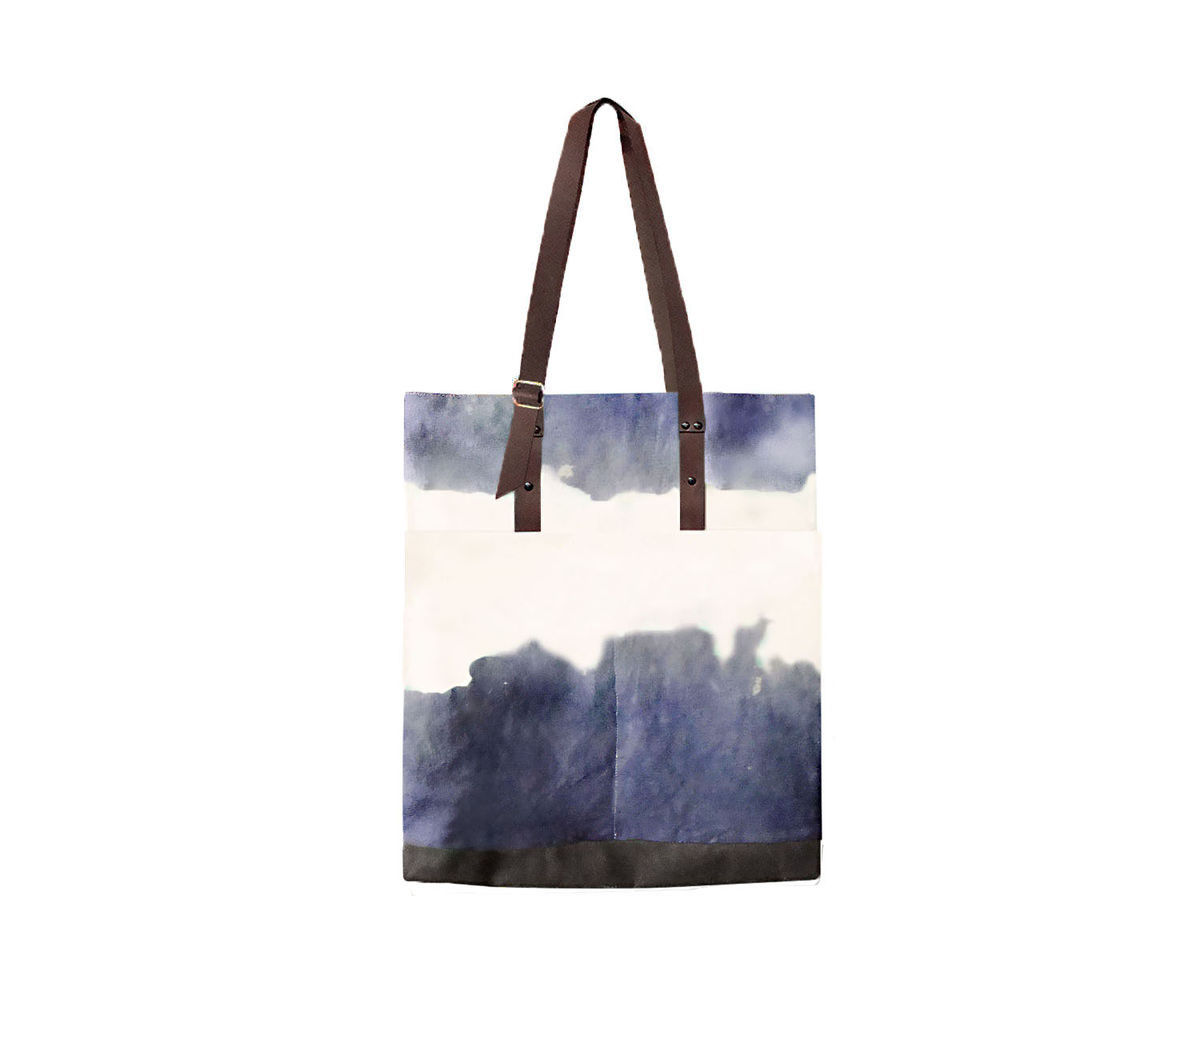 Quarters Pocket Tote, Hand Dyed Storm, Waxed Canvas and Leather - product images  of